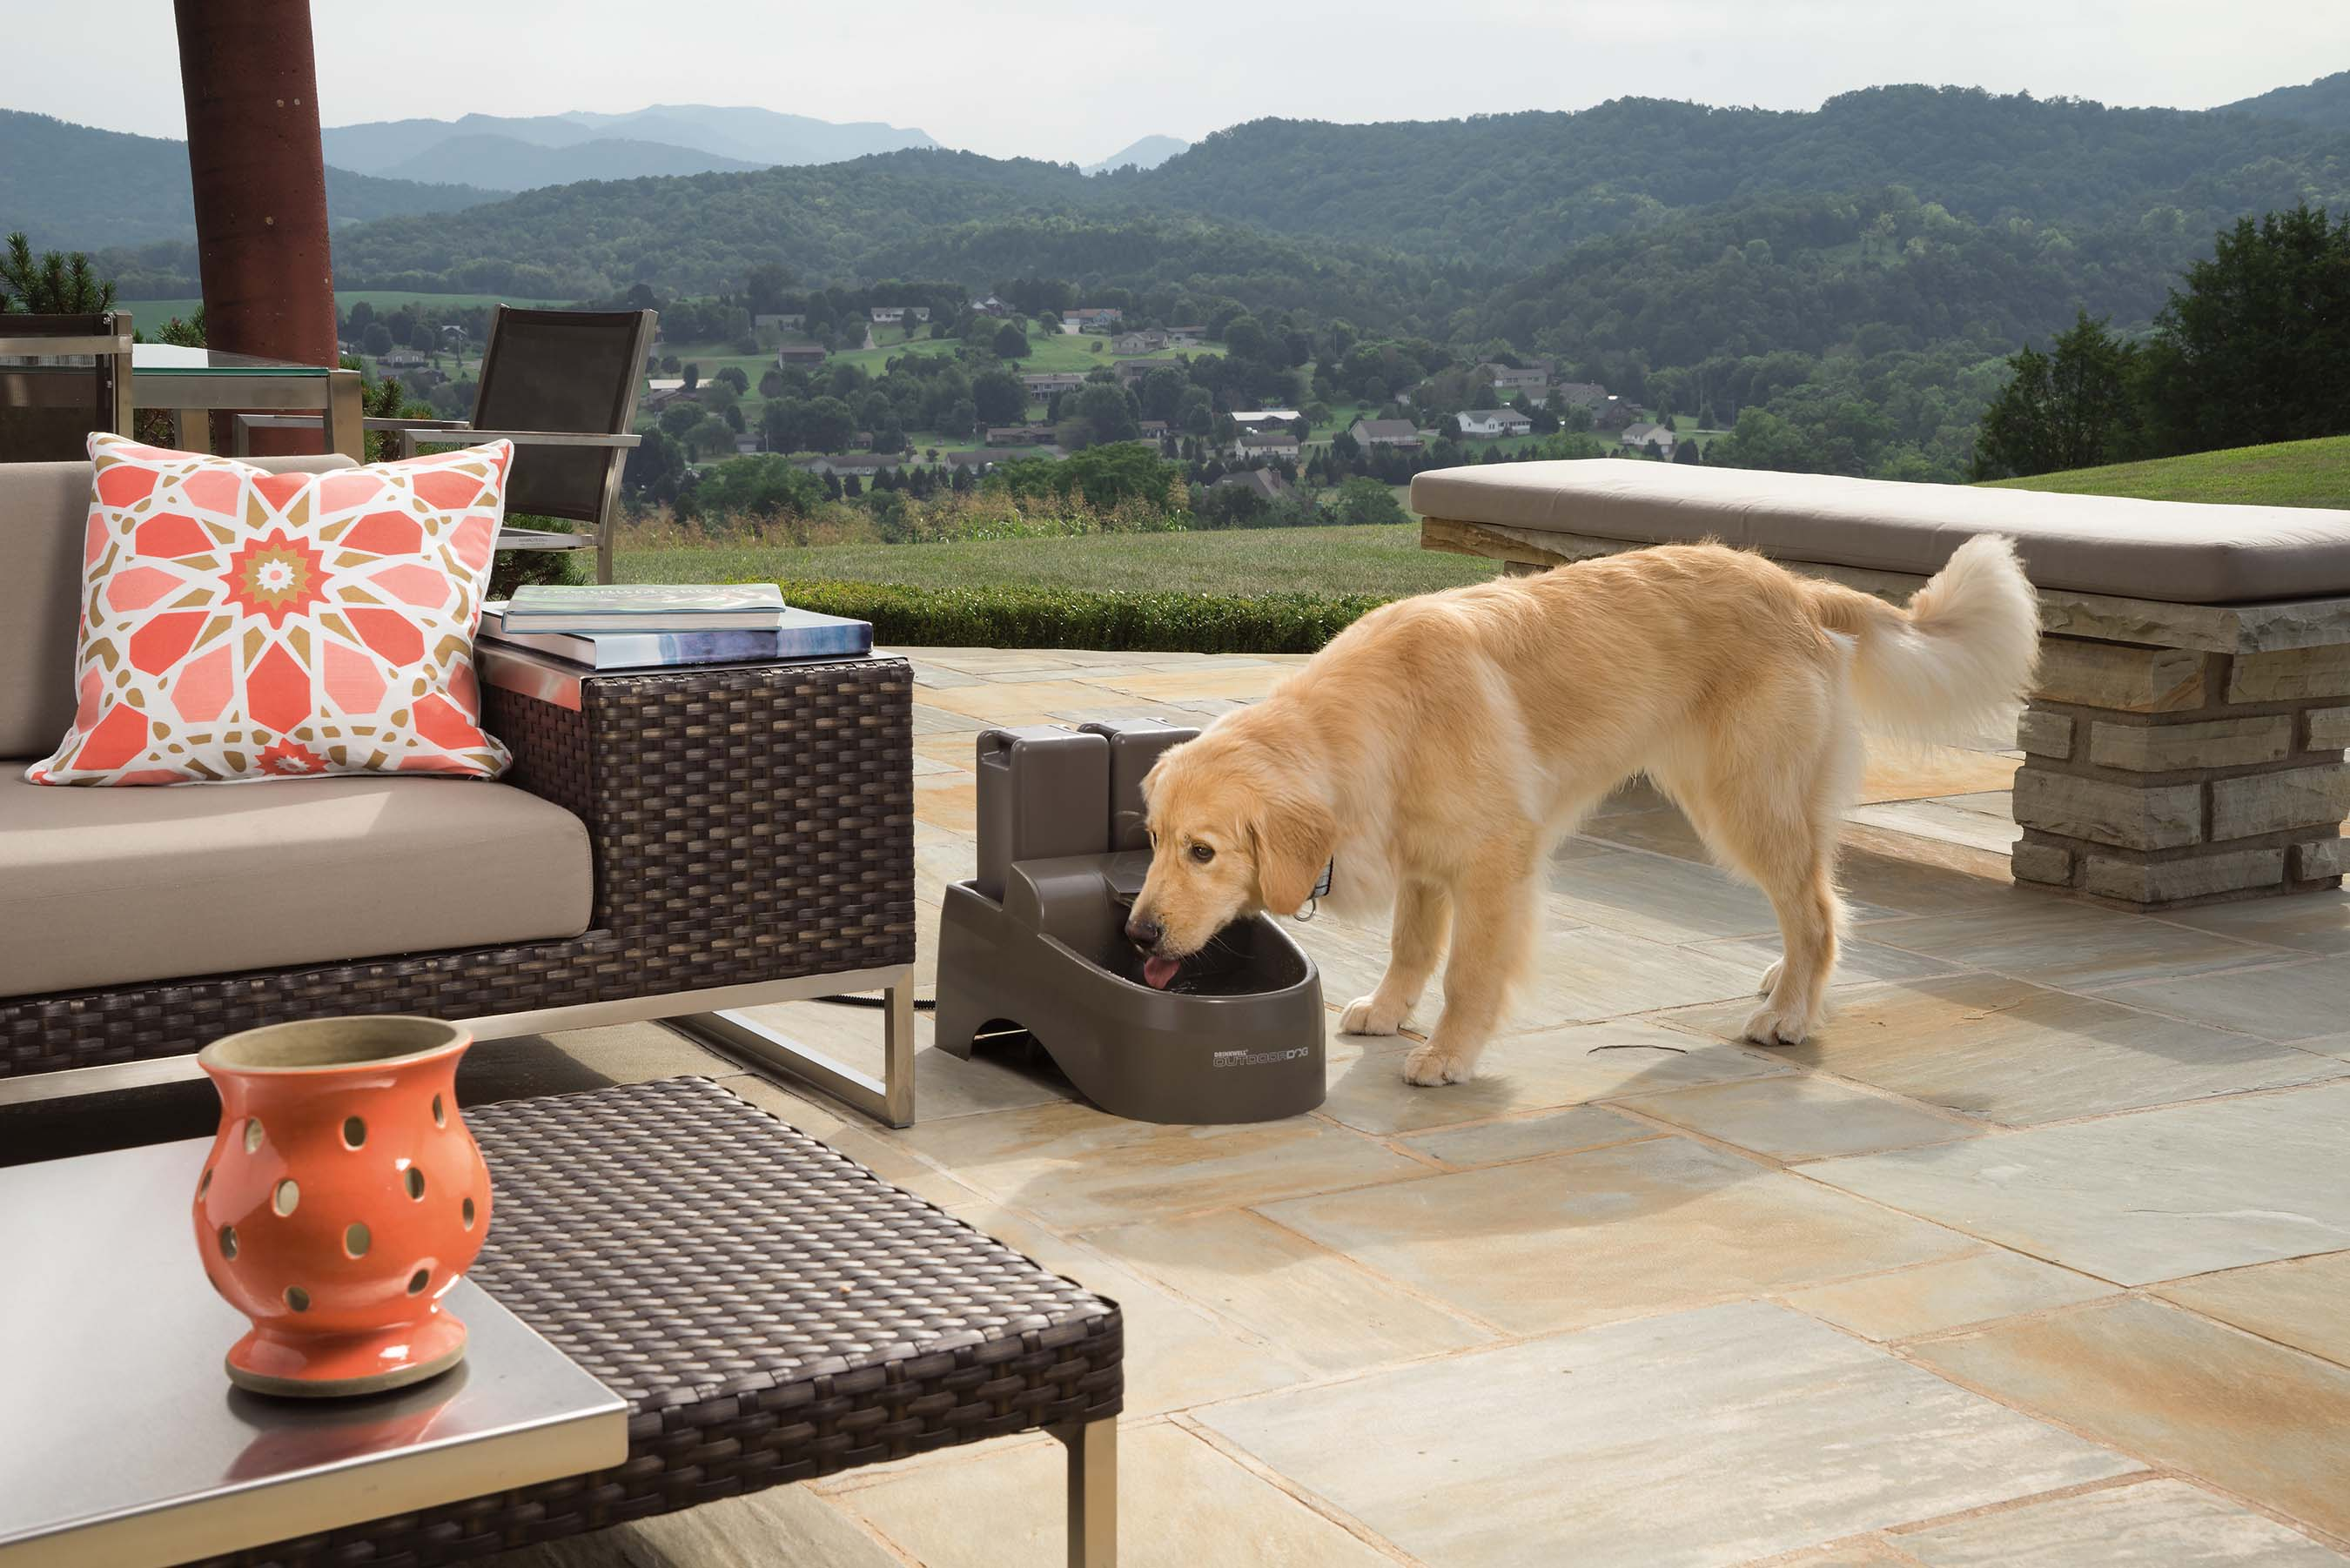 Pet fountains provide a clean supply of fresh, great-tasting water, giving dogs a reason to drink more to stay hydrated and healthy.